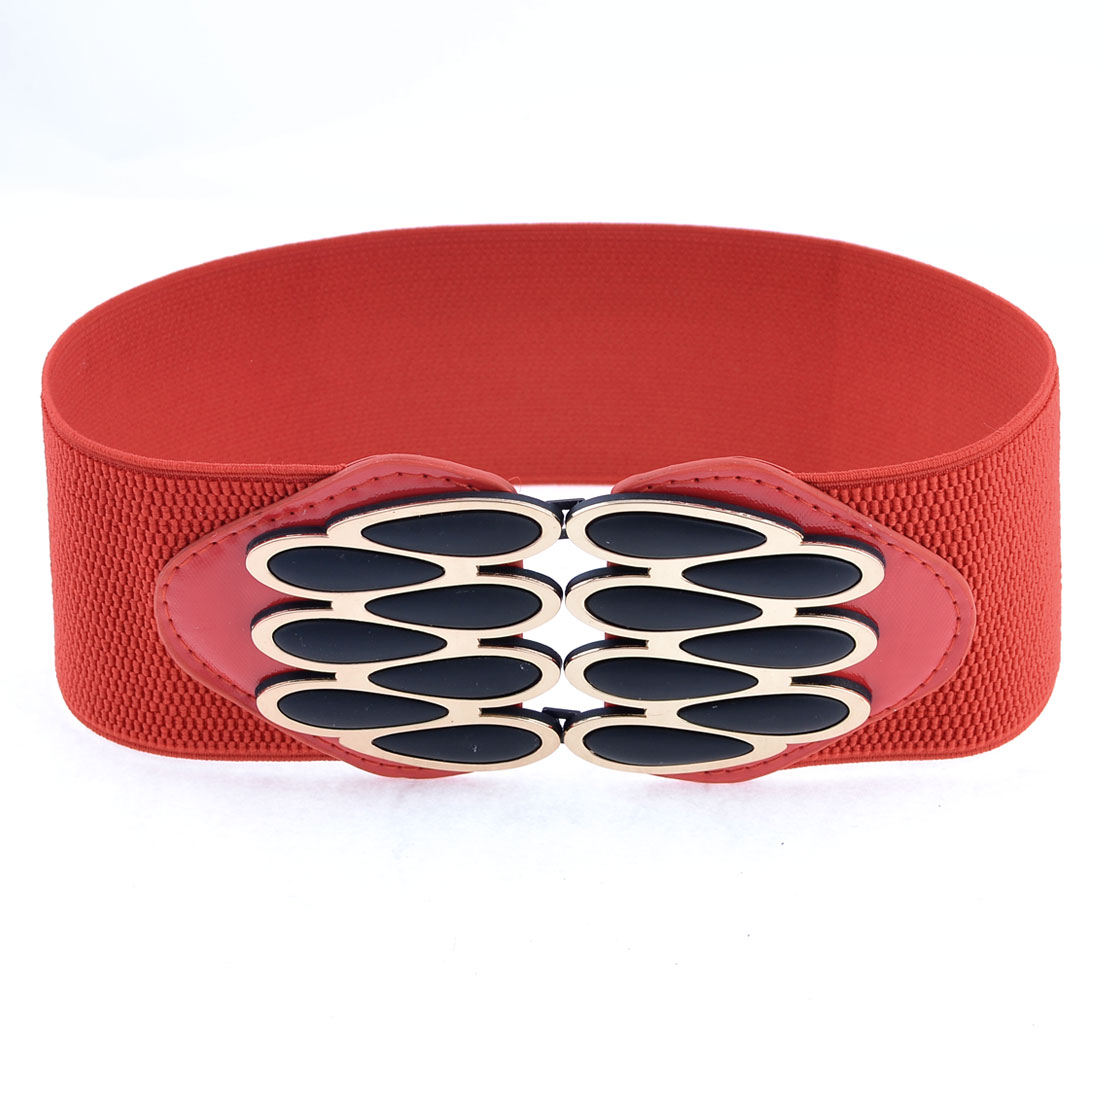 Red Elastic Band Faux Leather Plastic Waterdrop Shape Belt for Women